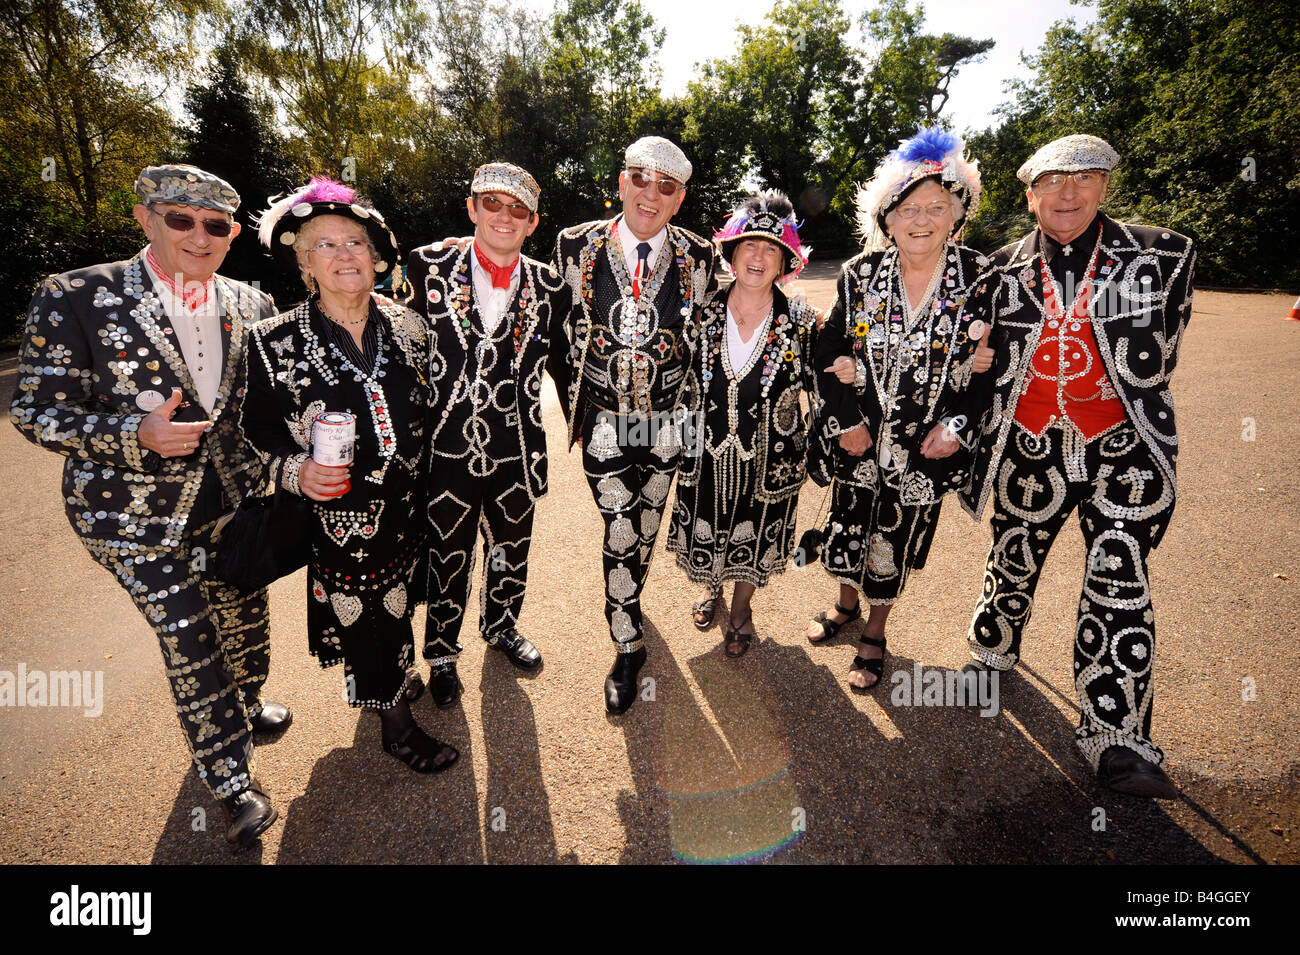 A group of London Pearly Kings & Queens linked arm in arm wearing their distinctive pearly suits. Picture by - Stock Image